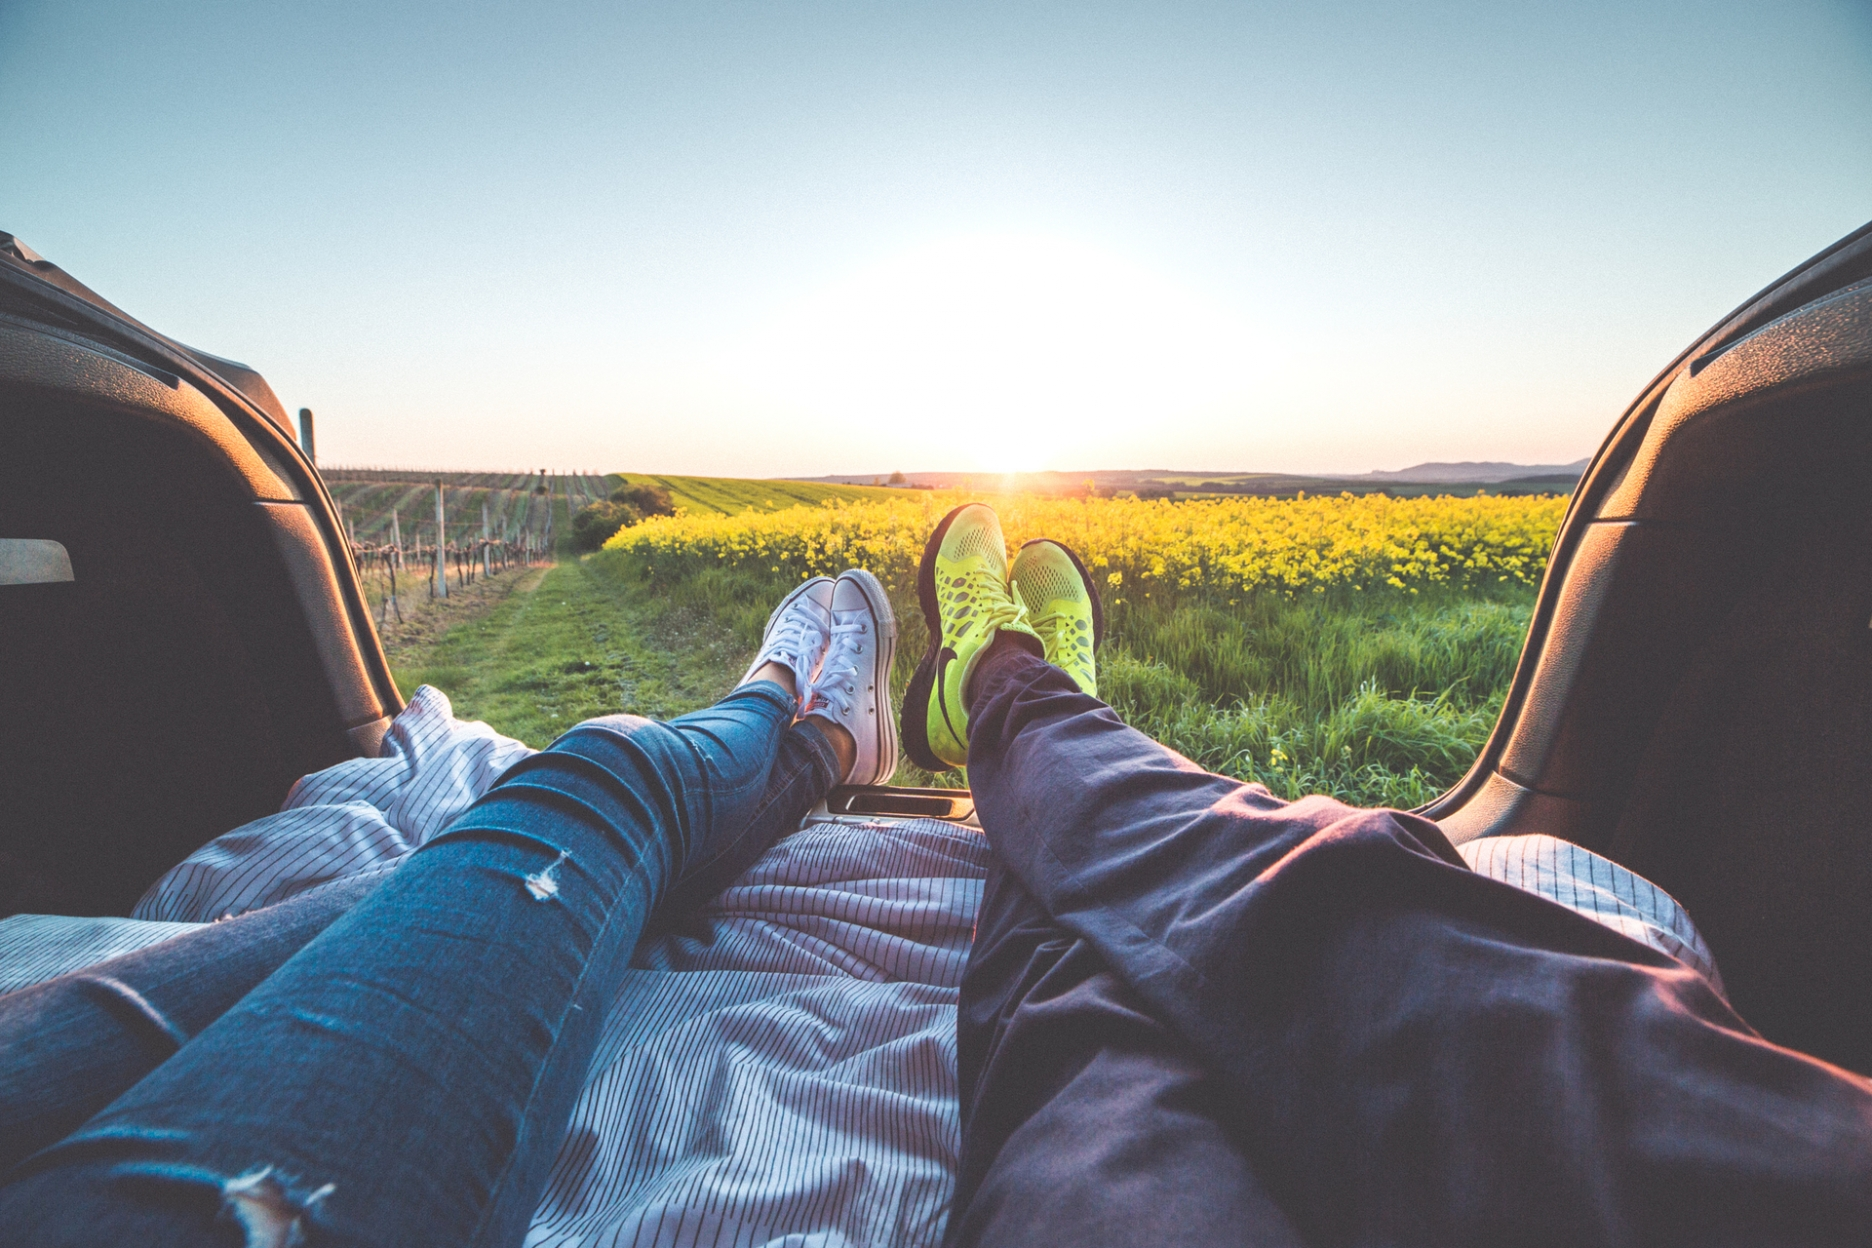 young-couple-enjoying-romantic-sunset-from-car-trunk-picjumbo-com.jpg